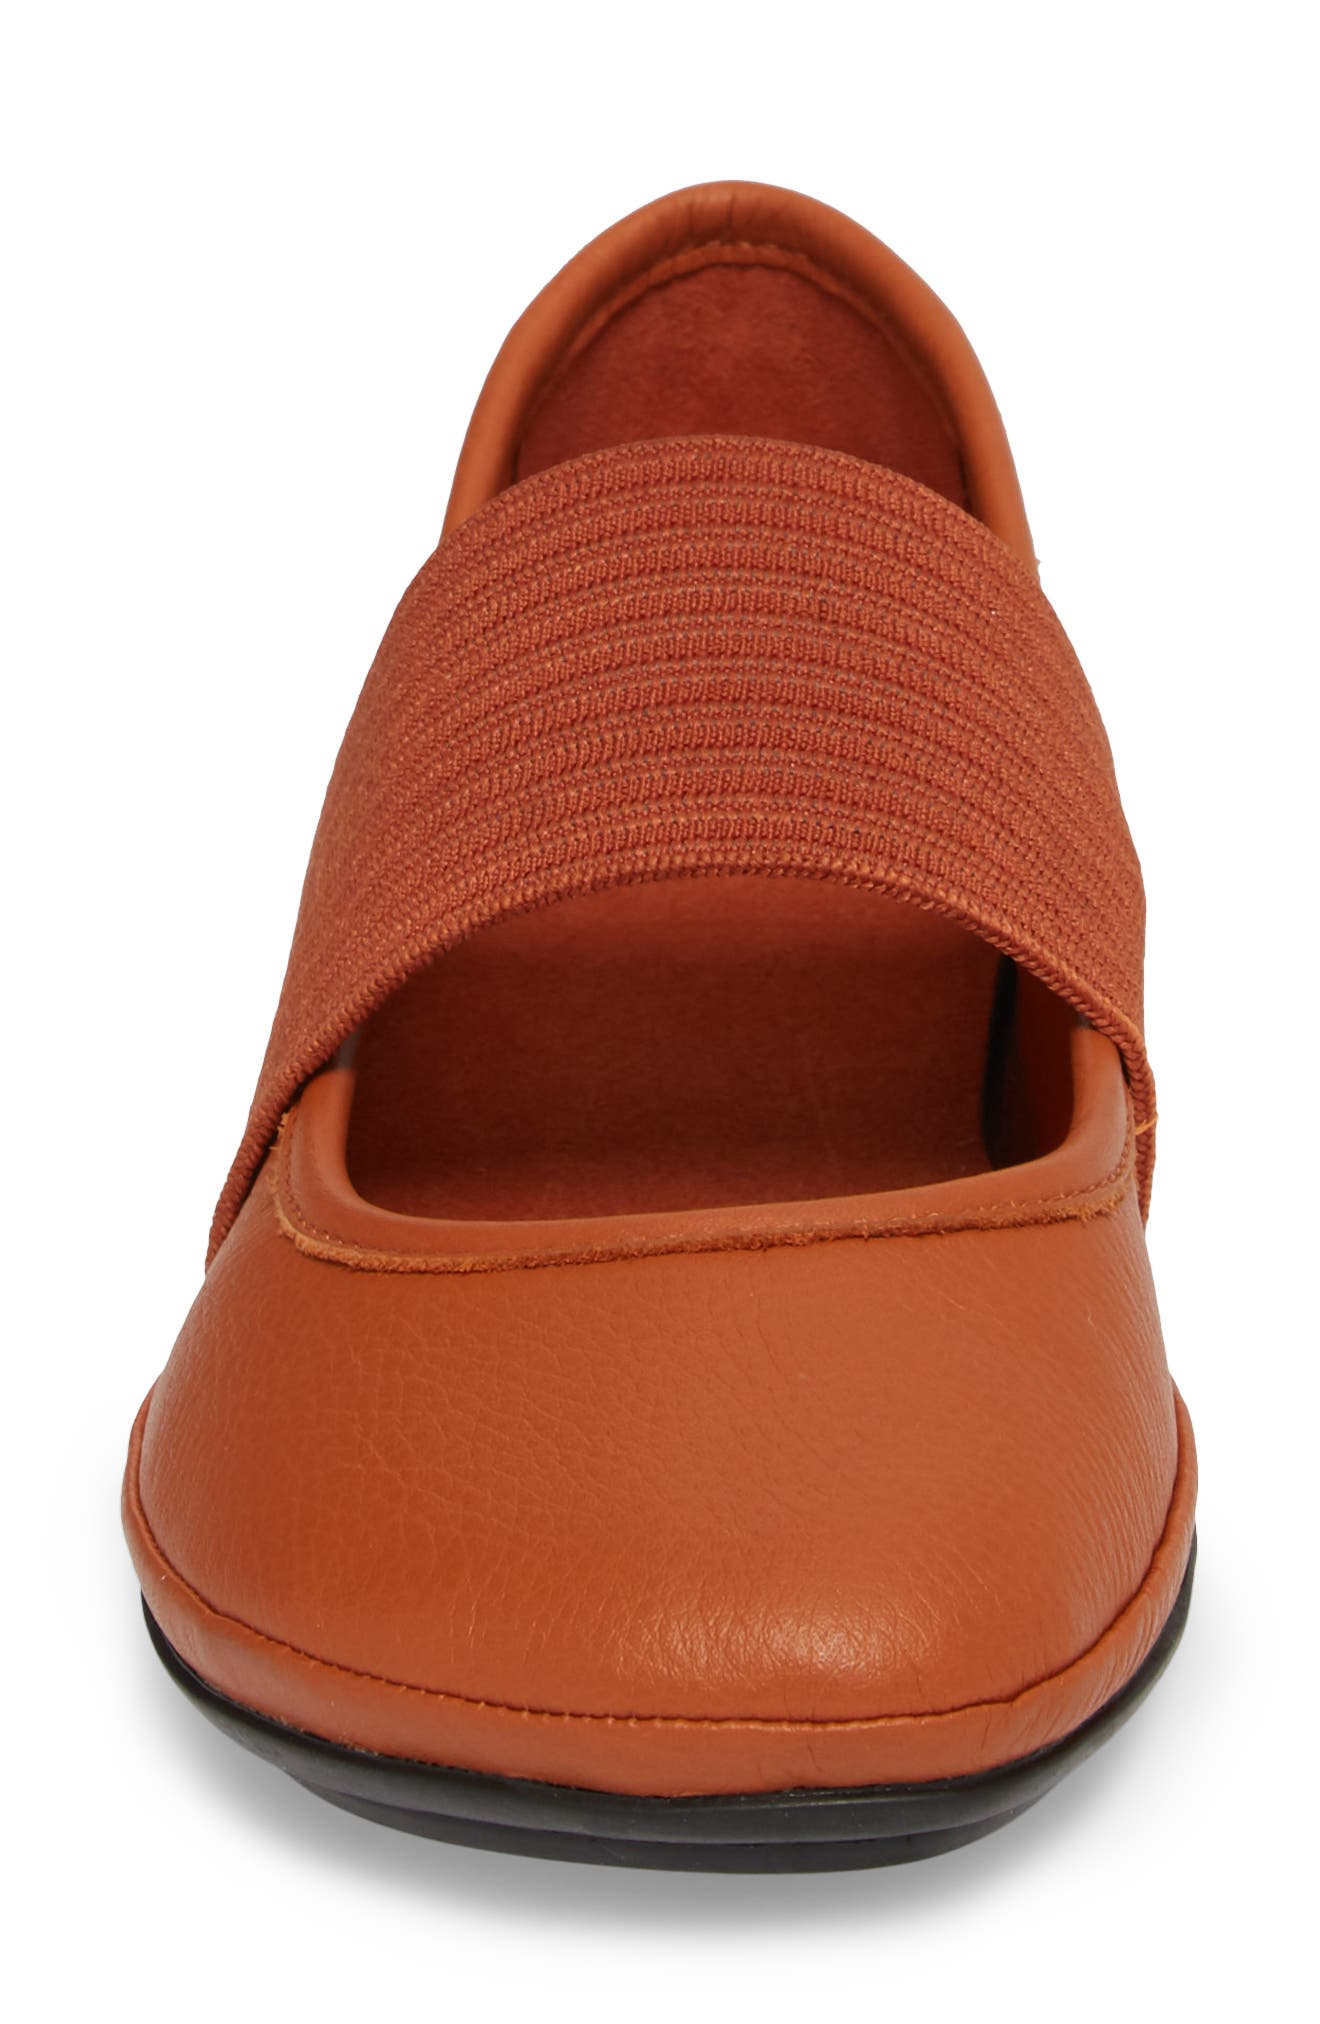 Right Nina Ballet Flat,                             Alternate thumbnail 3, color,                             Rust/Copper Leather